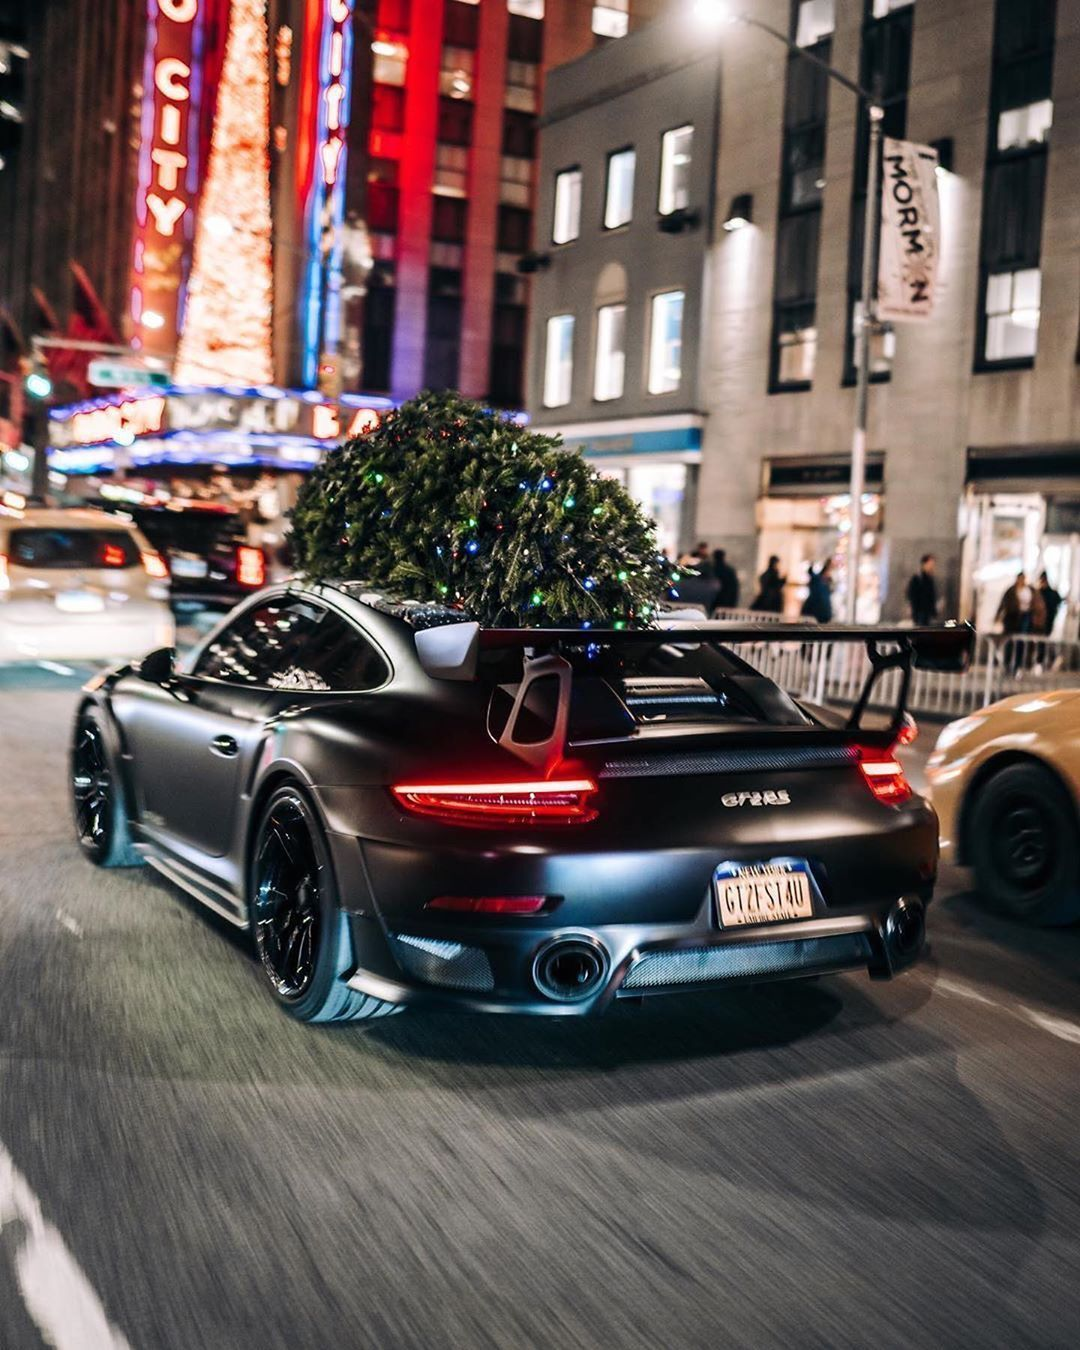 Dream Supercar What Do You Think Click To Be Inspired Luxurycar Luxury Beautiful Supercars Dreamcars Spor In 2020 Amazing Cars Luxury Cars Car In The World